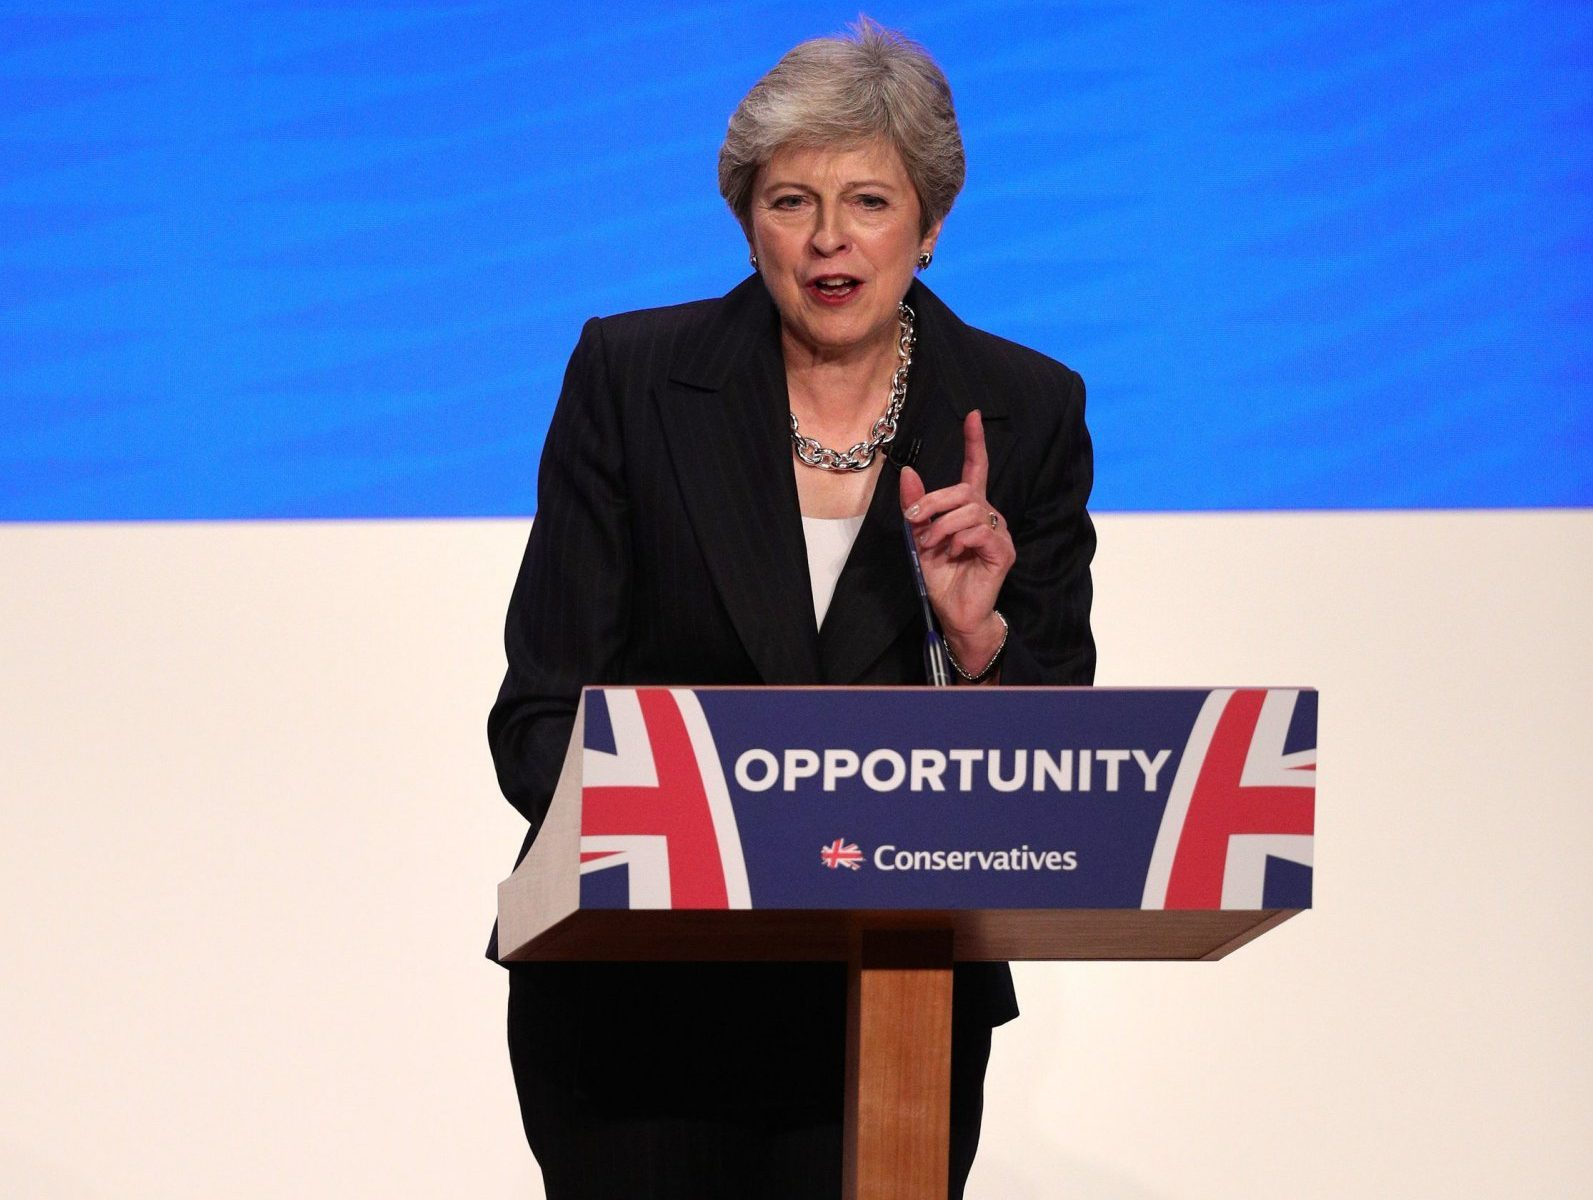 Prime Minister Theresa May makes her speech at the Conservative Party annual conference at the International Convention Centre, Birmingham.